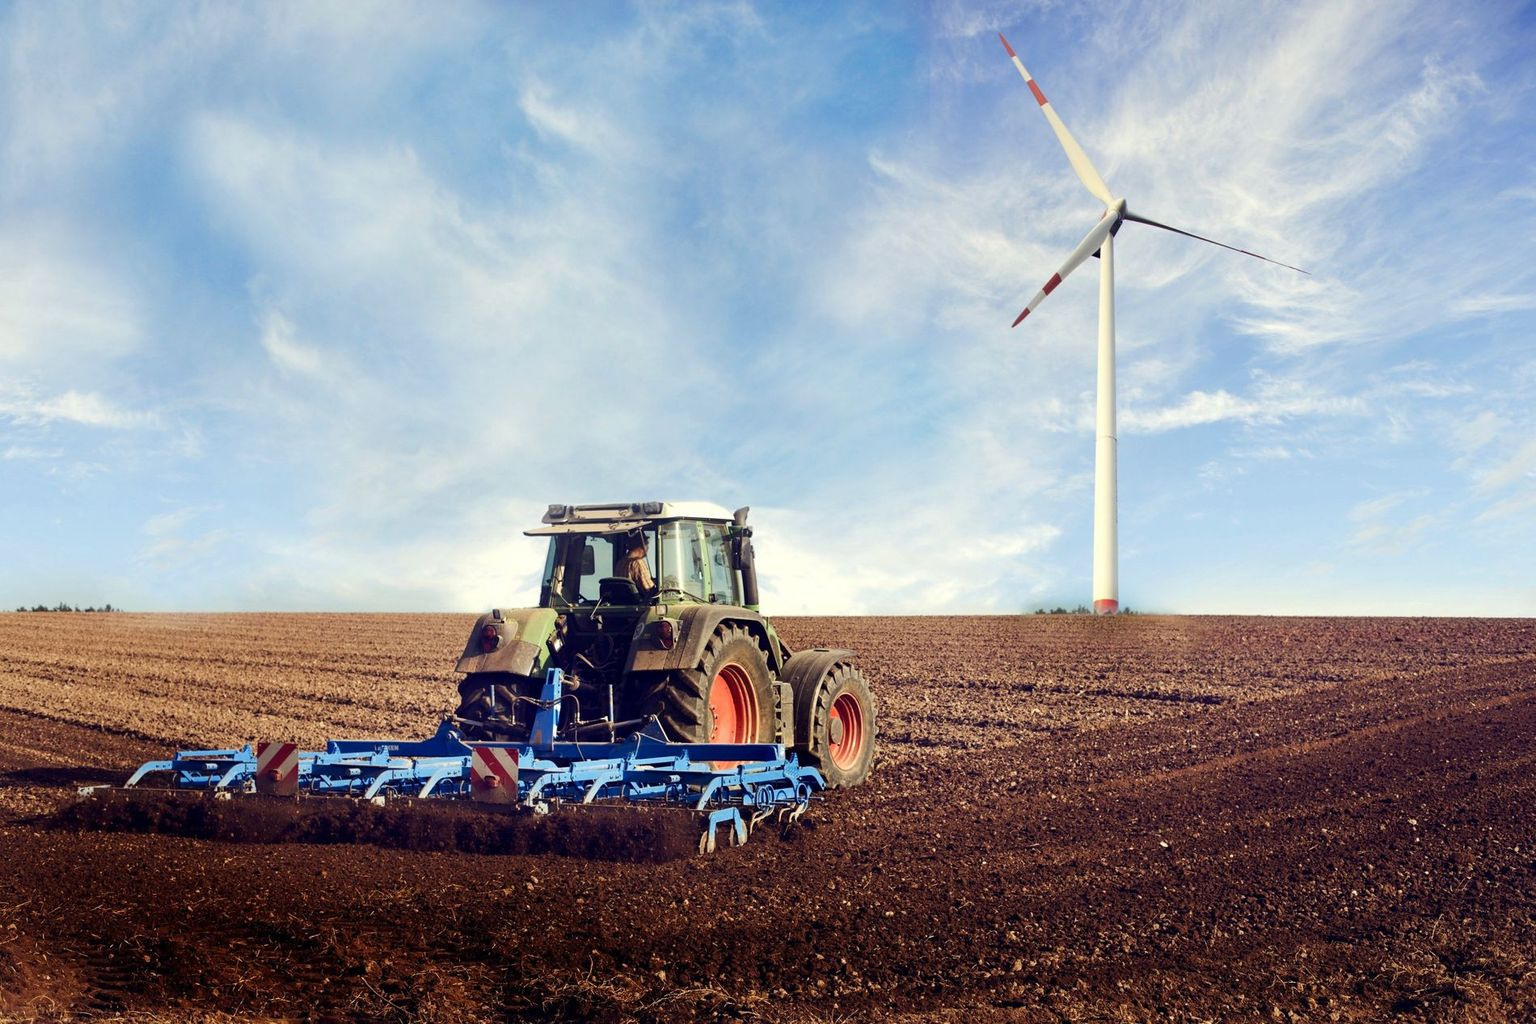 Agriculture and wind power